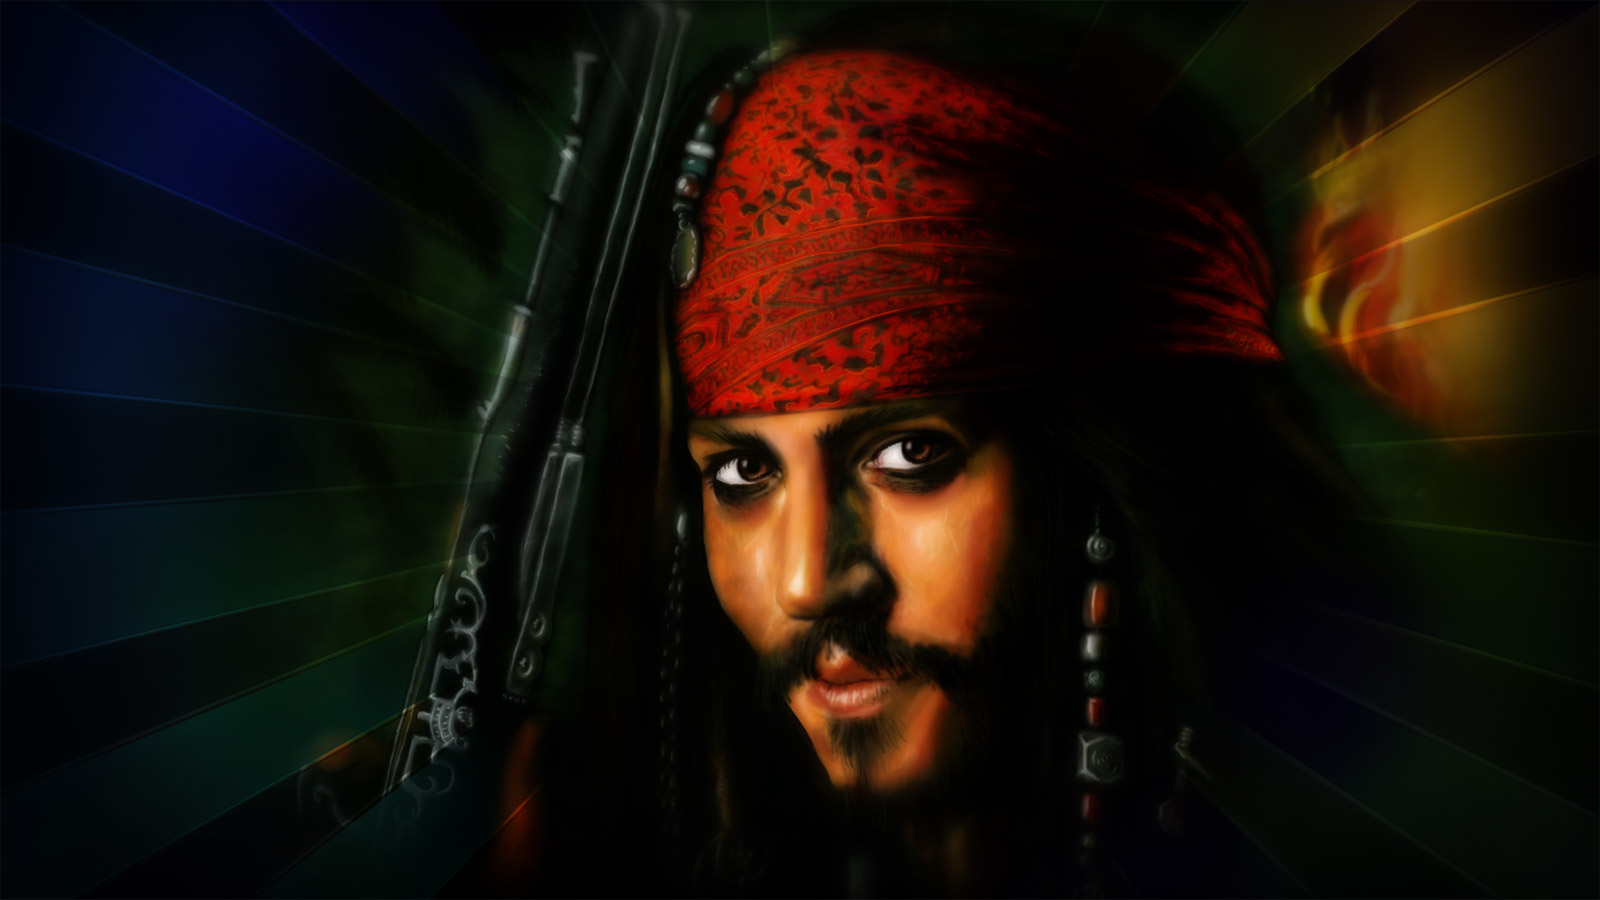 Jack sparrow wallpaper free download pc desktop